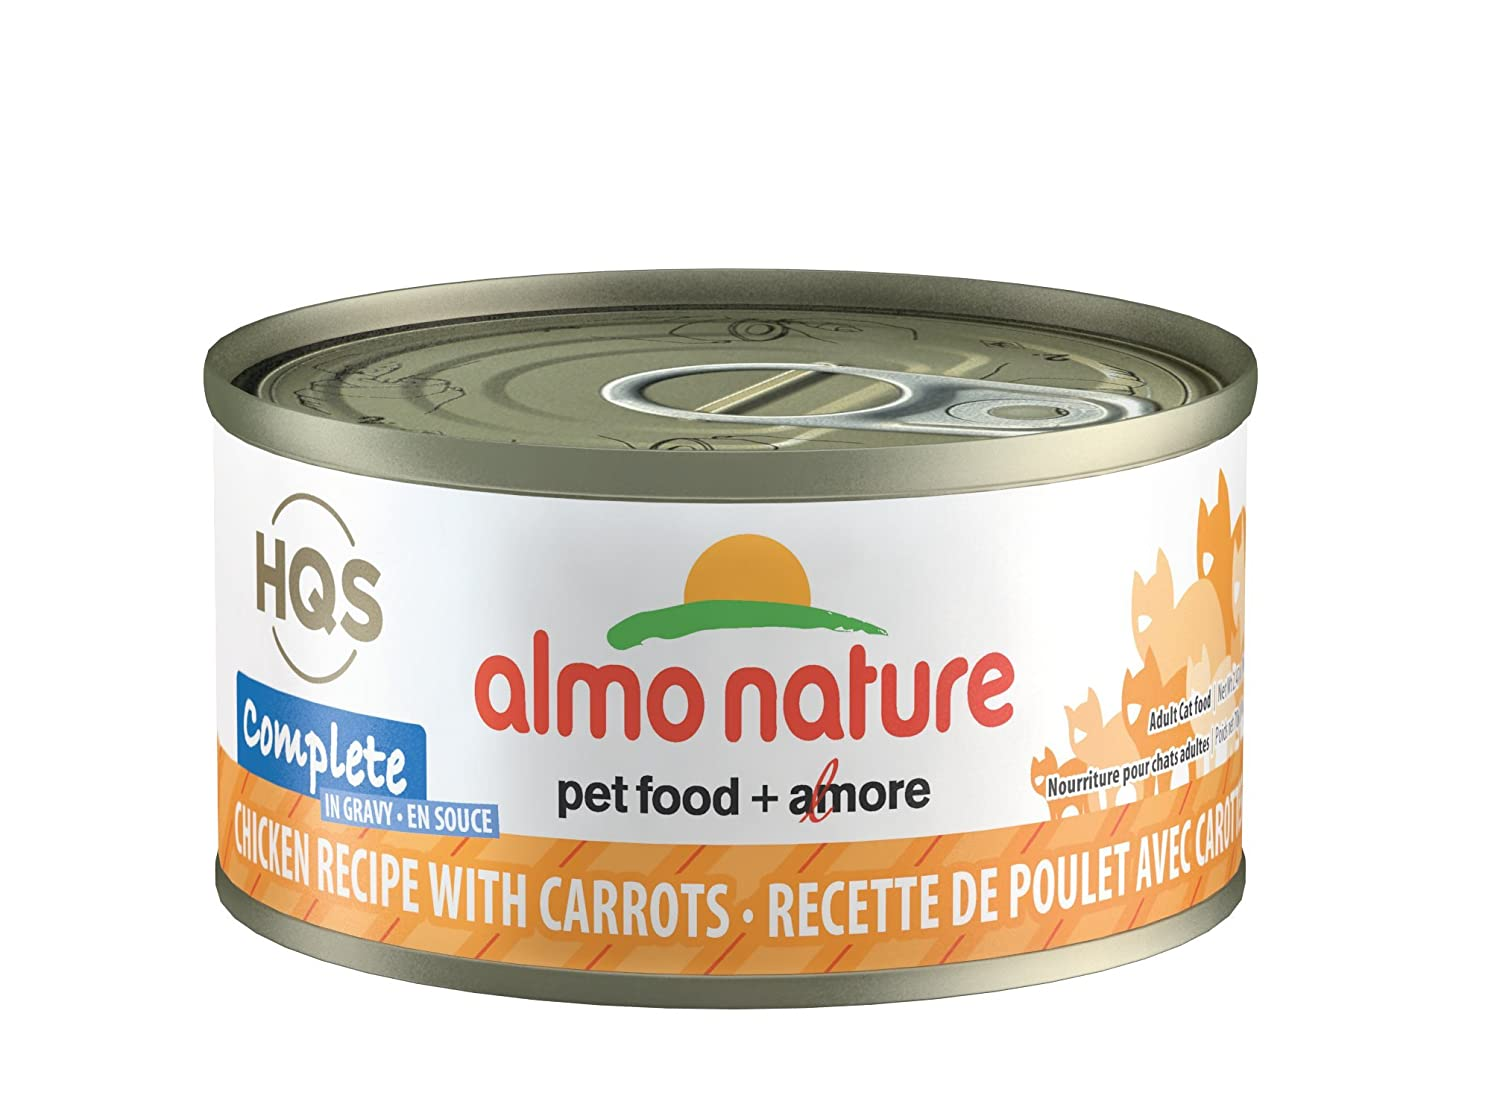 almo nature HQS Complete, High Protein, Natural Grain Free Wet Cat Food (Pack of 24 x 2.47 Ounce/70 Grams)